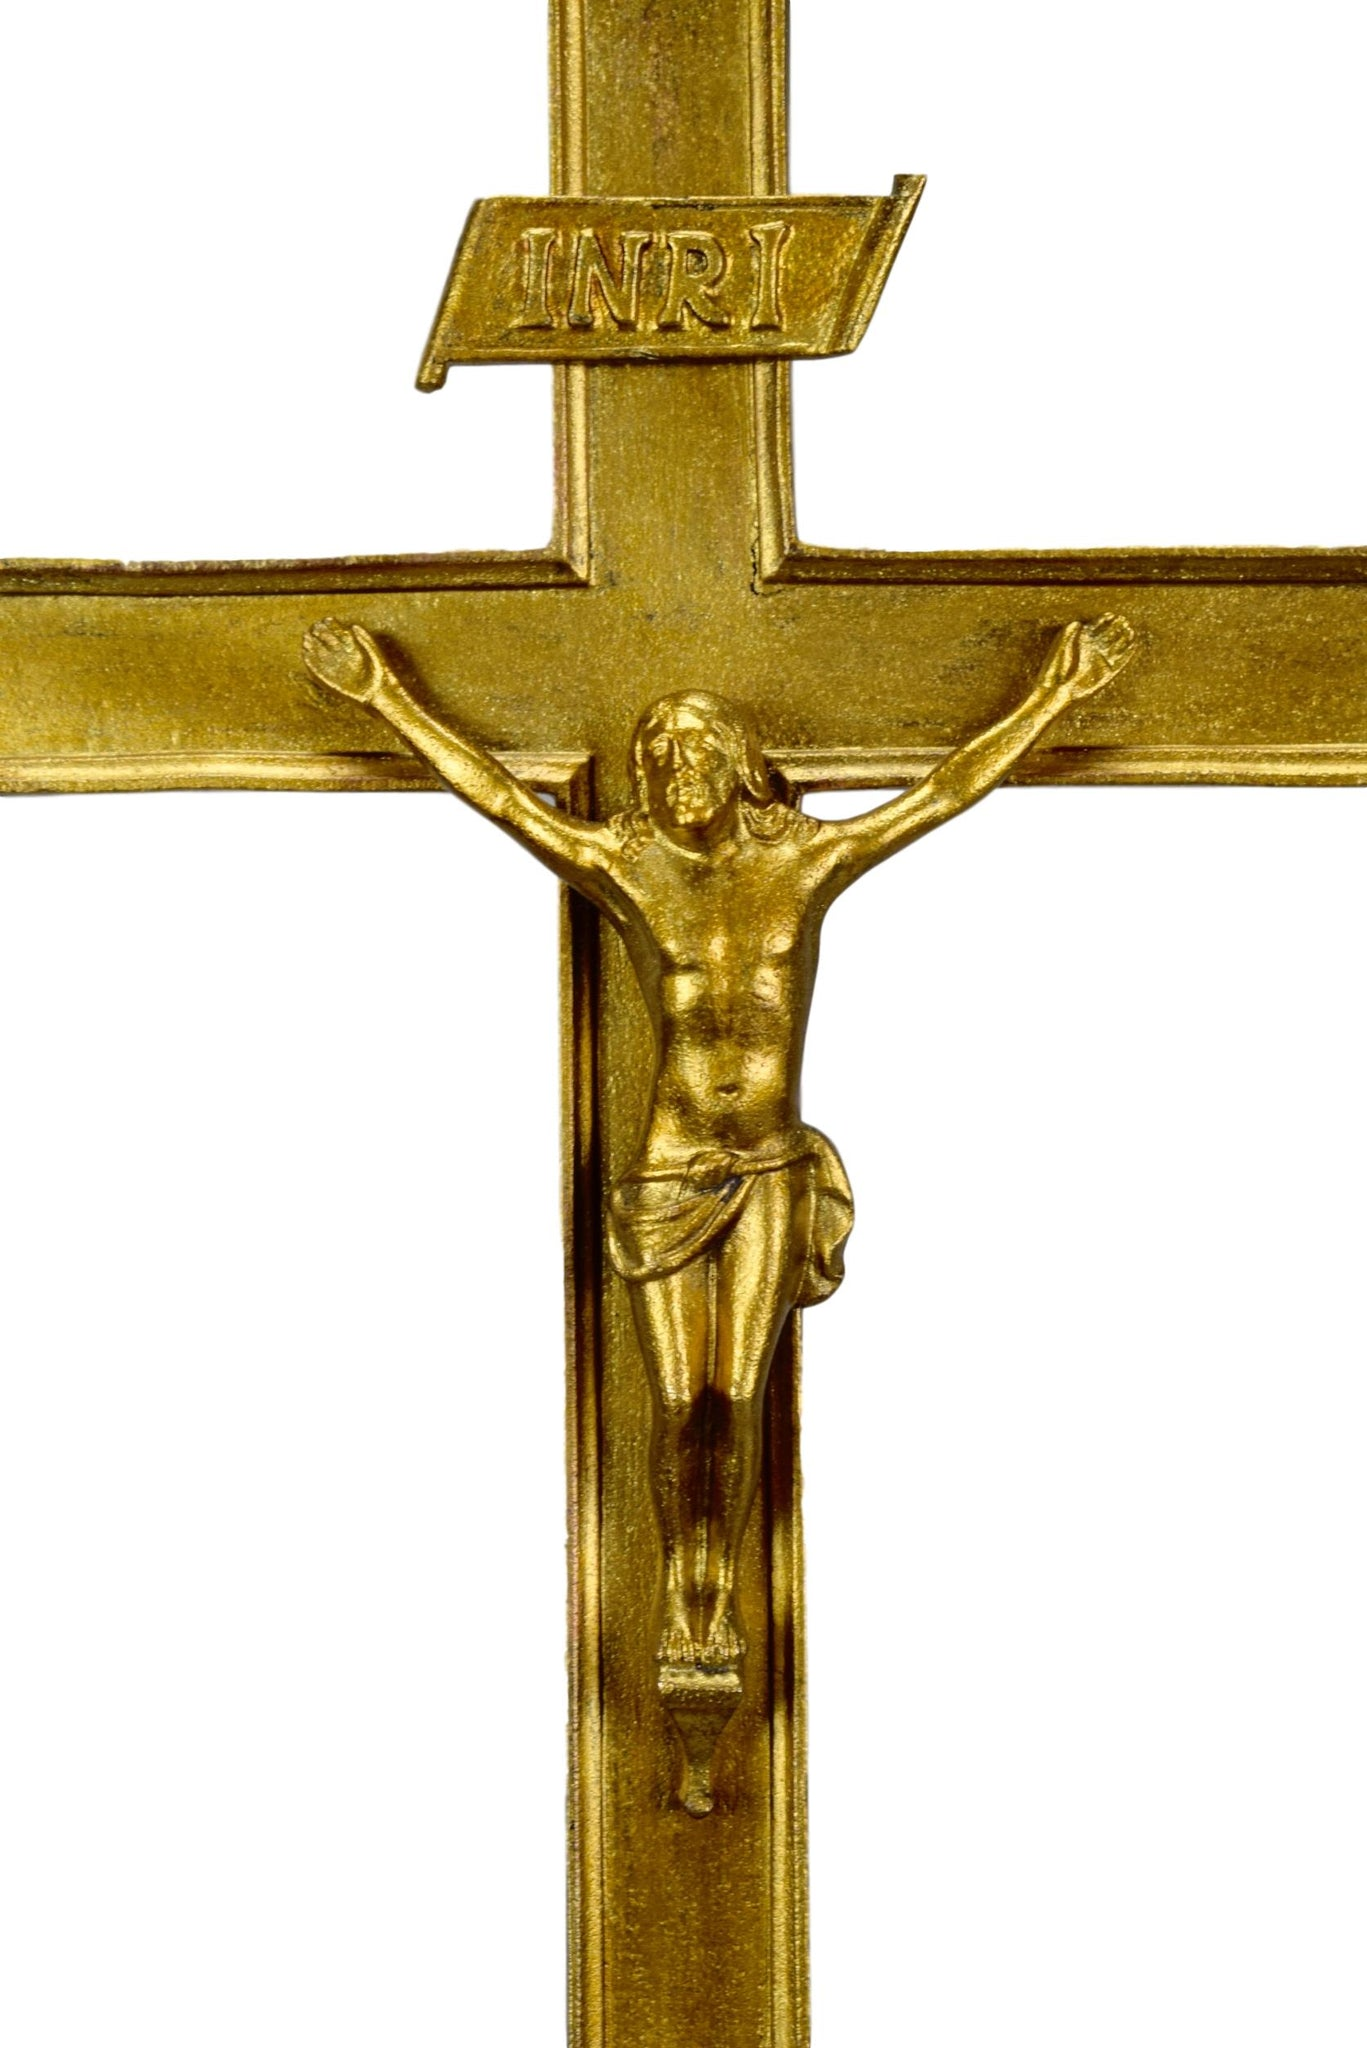 "French Antique Religious Large Bronze Crucifix - French Catholic Standing Cross - Ormolu Bronze Crucifix - 22"" High Altar Cross"